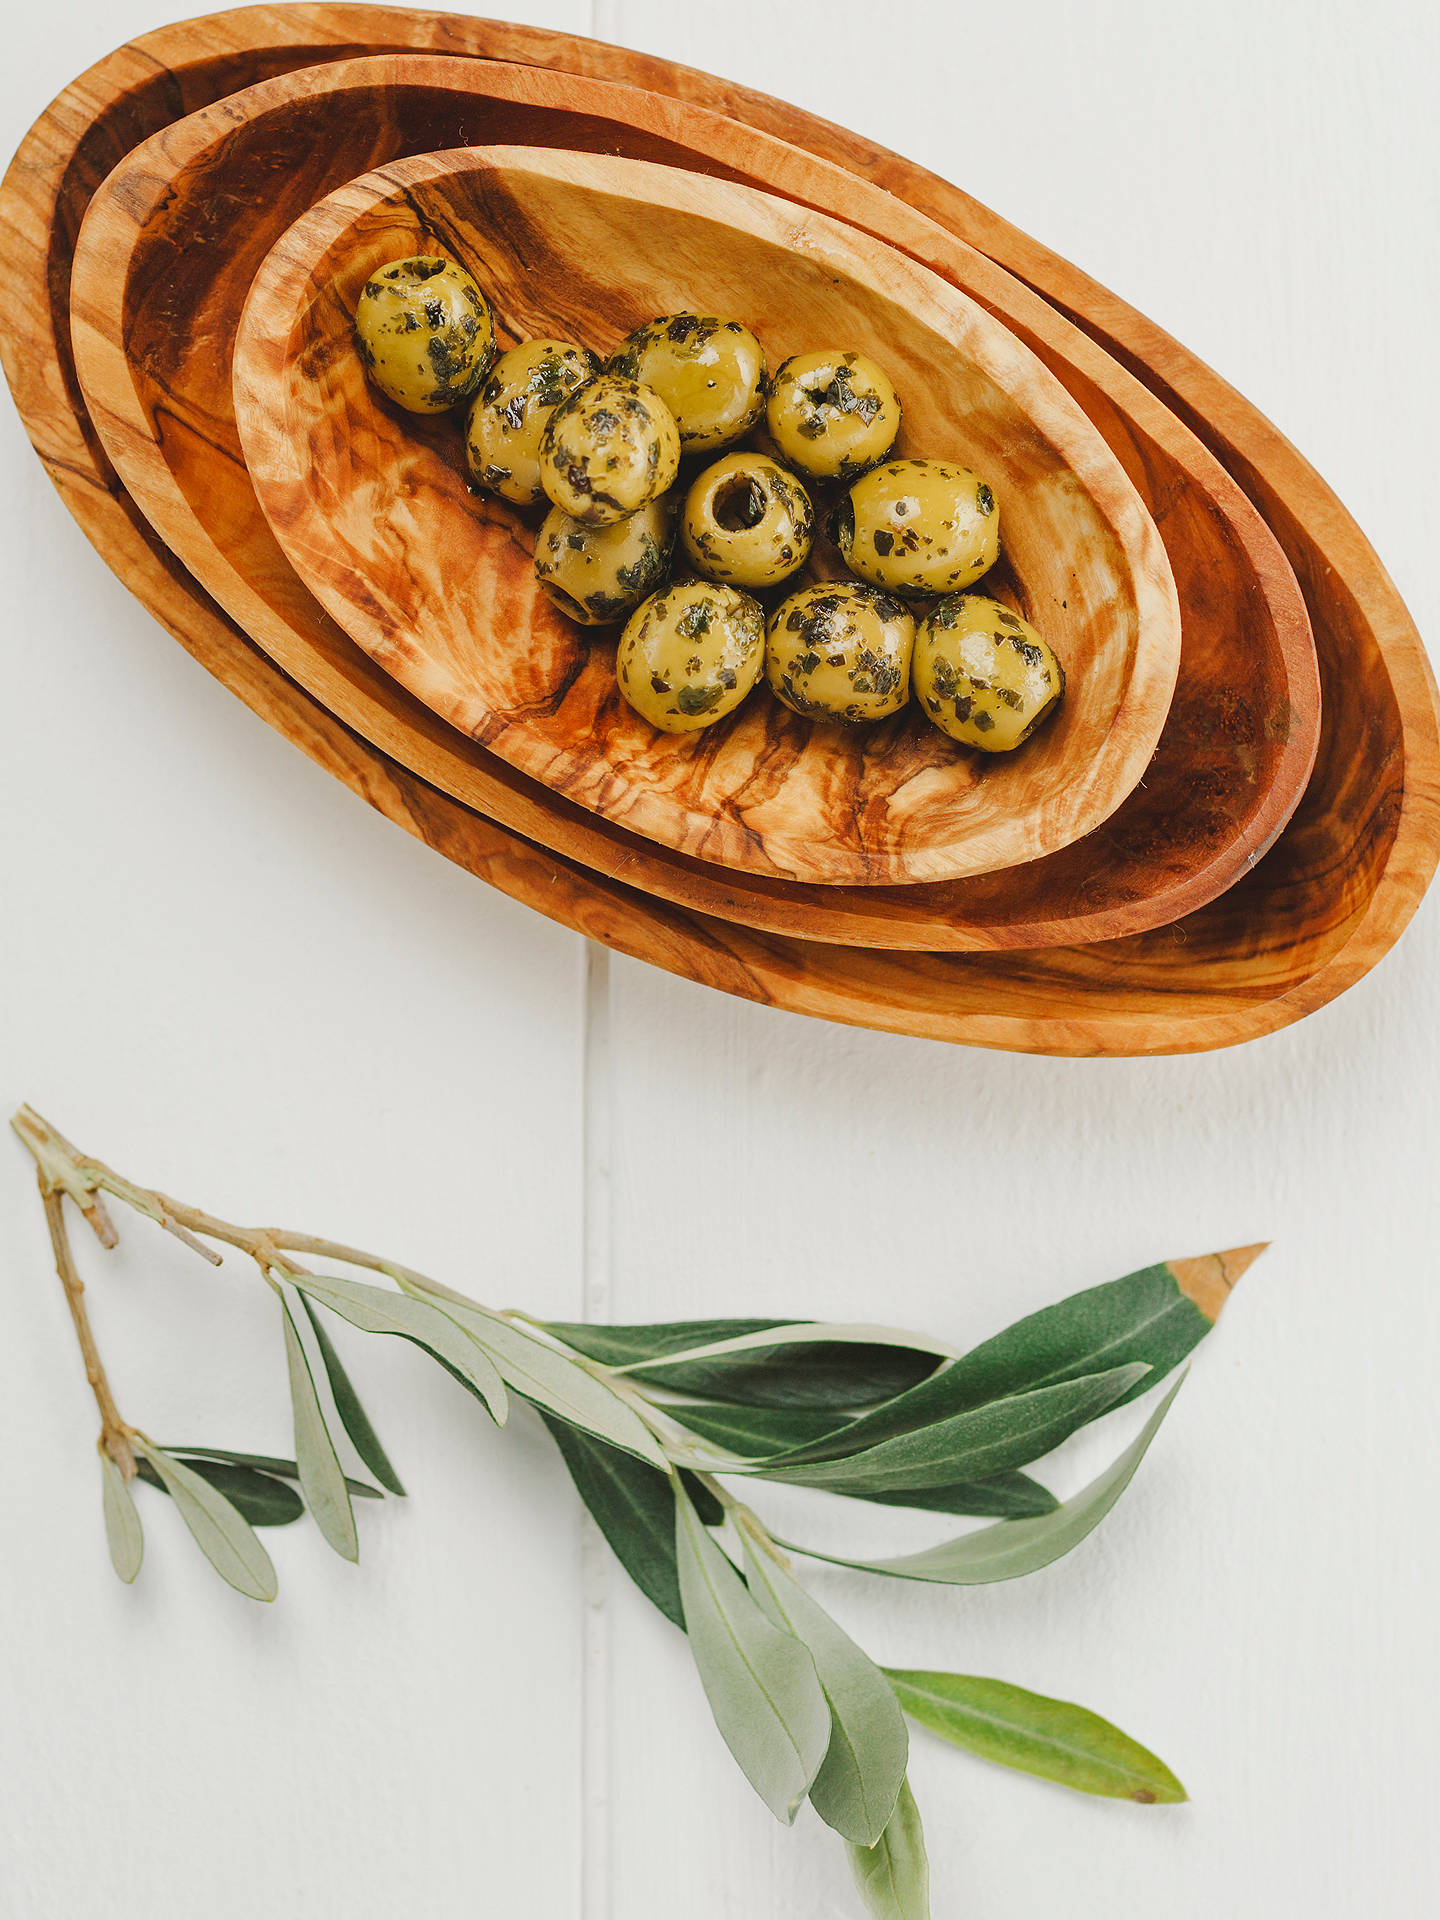 BuyNaturally Med Olive Wood Stacking Bowl Set, Set of 3 Online at johnlewis.com